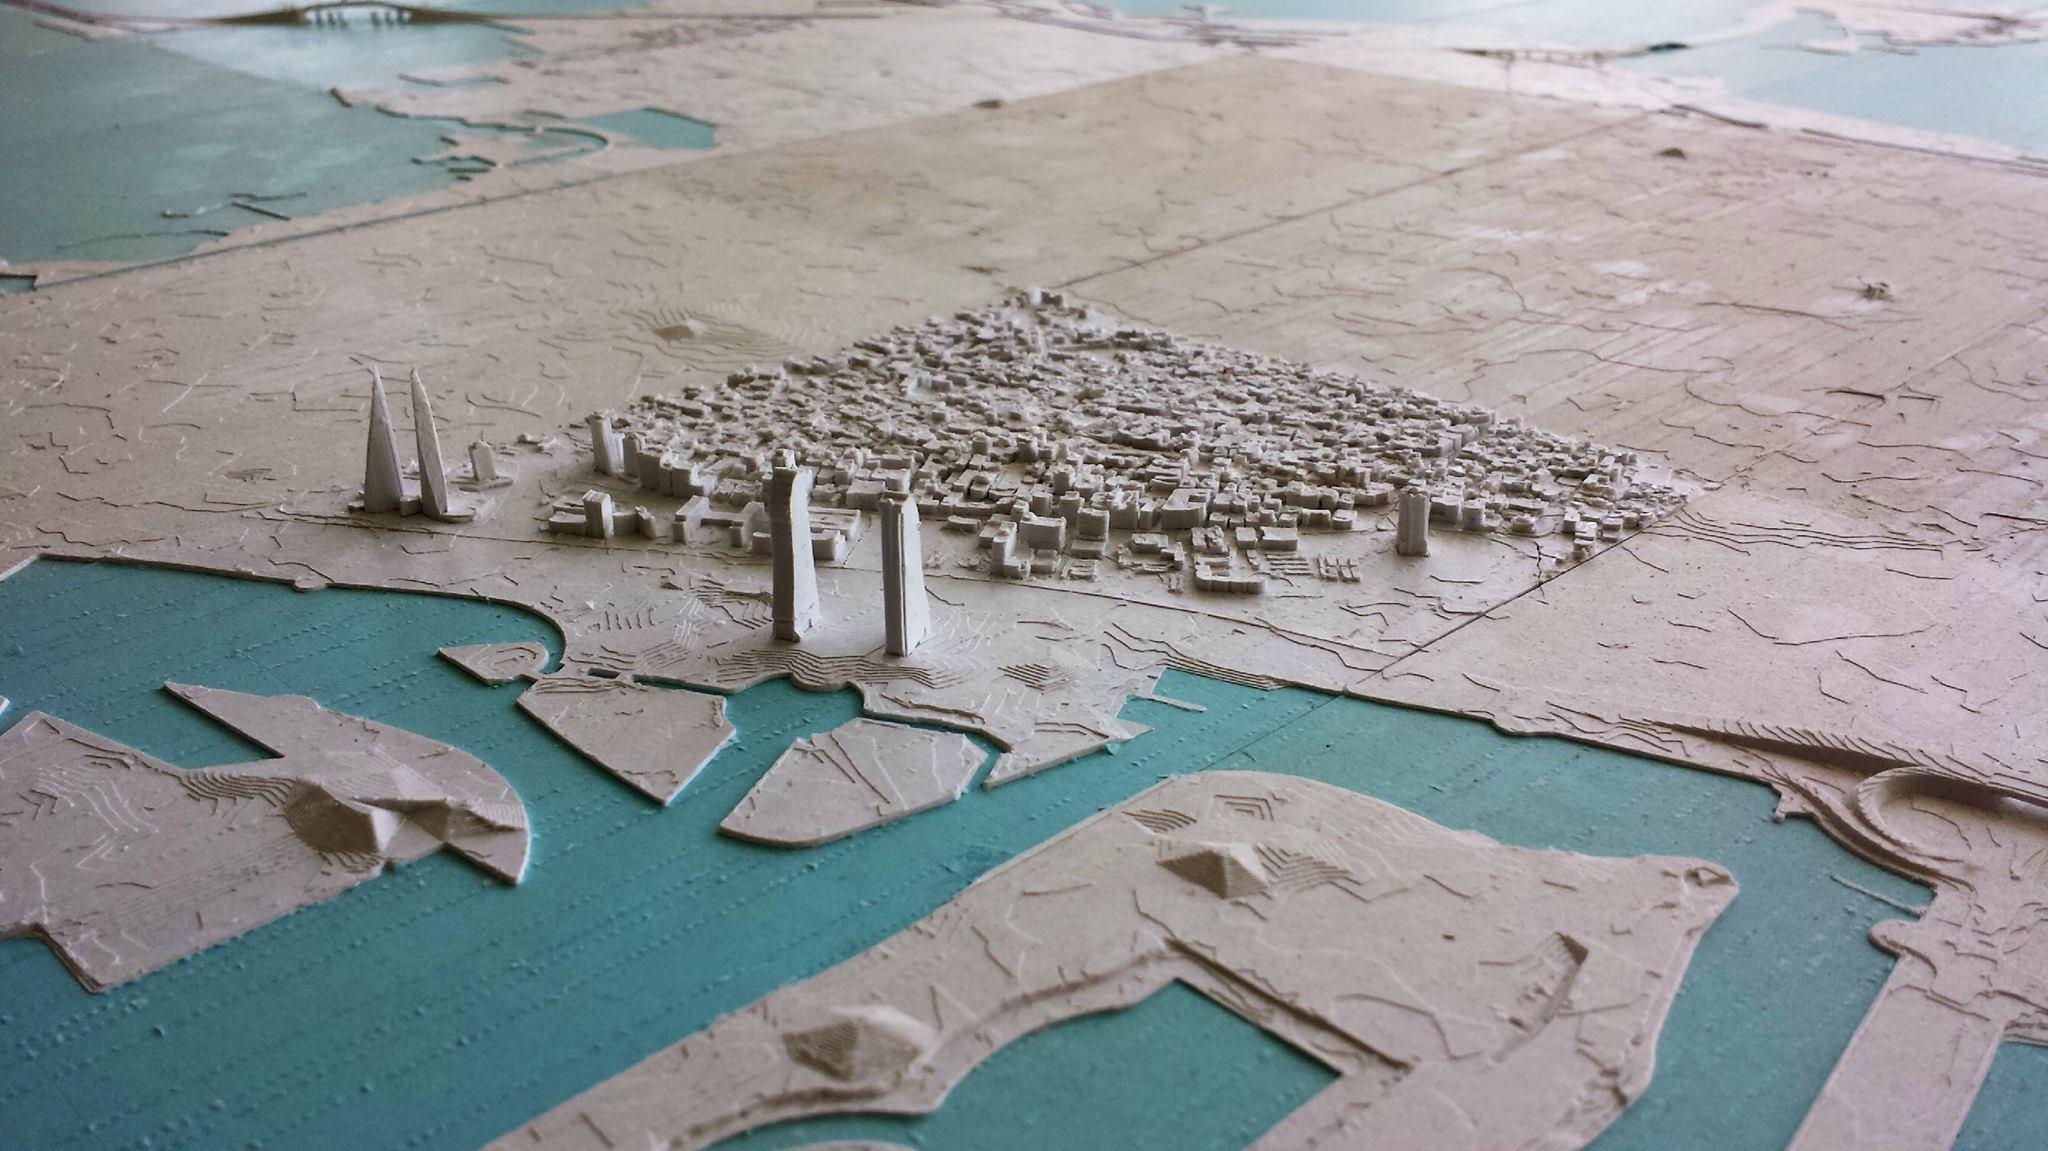 The Entire Country of Bahrain has Been 3D Printed in a Huge 1:10,000-scale Model